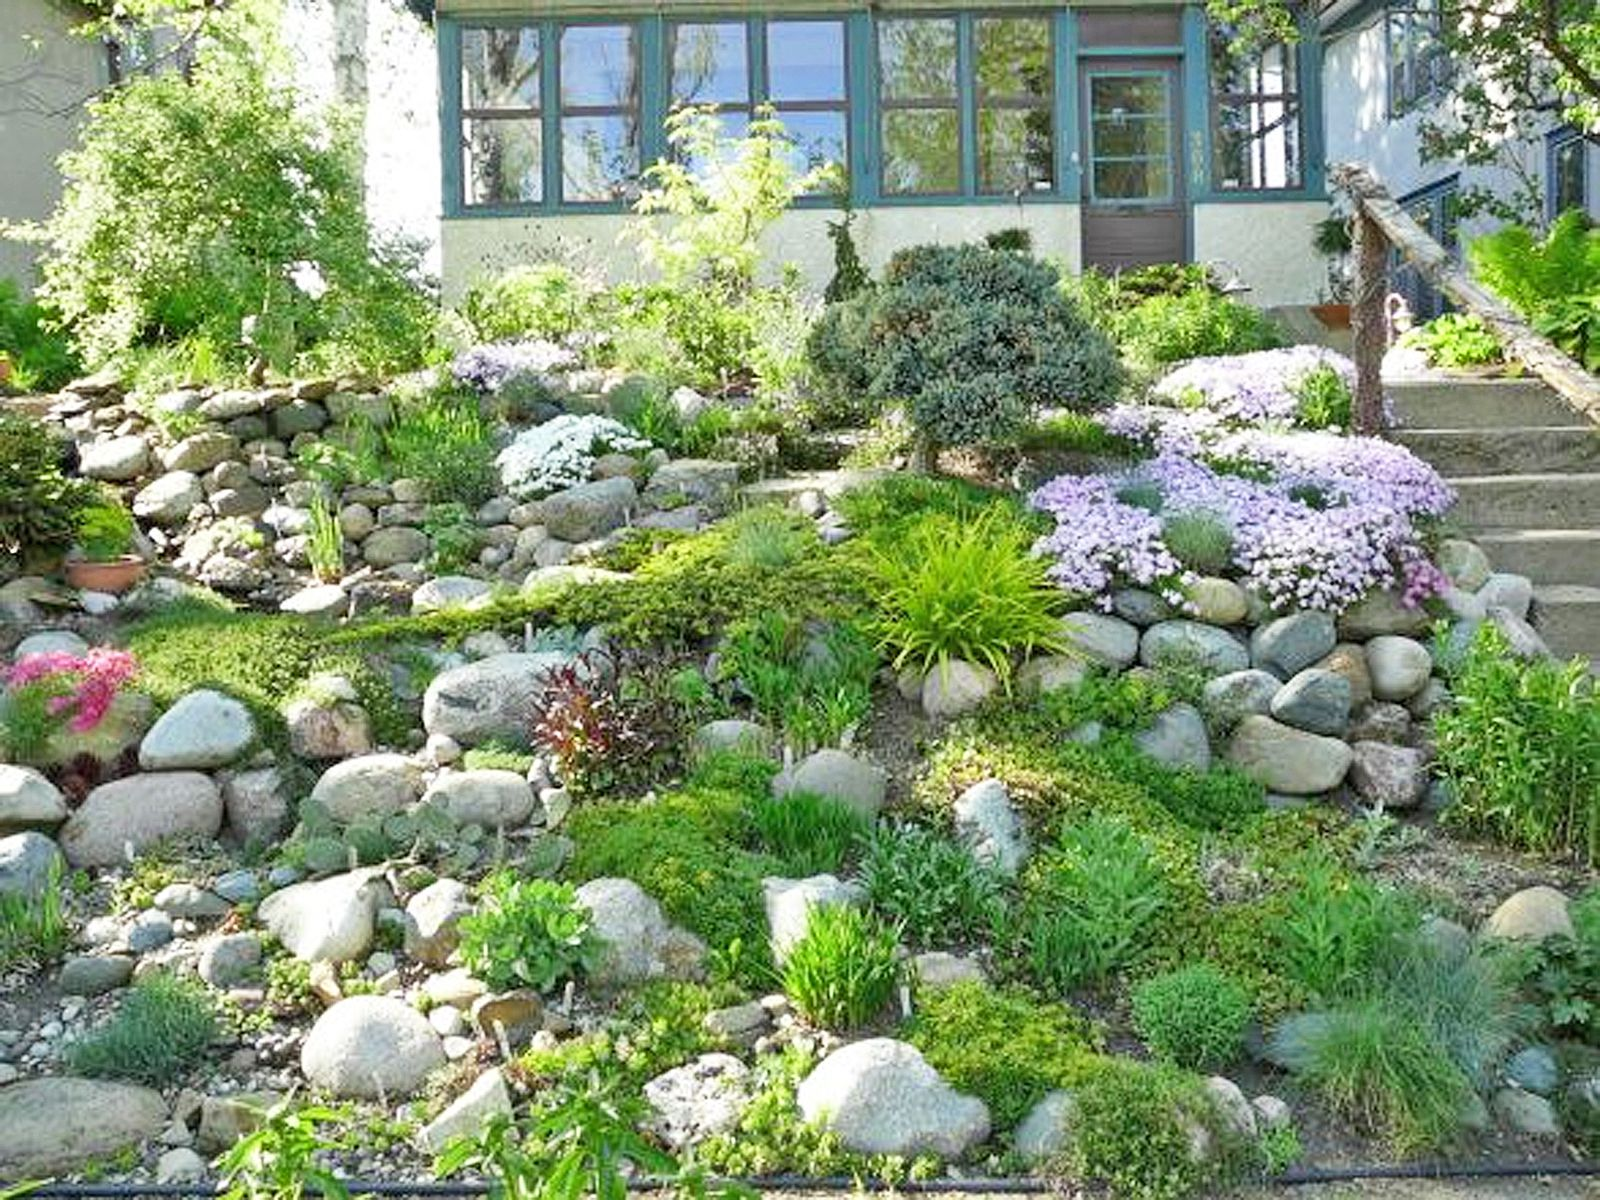 13 Hillside Landscaping Ideas to Maximize Your Yard on muddy backyard ideas, hill backyard ideas, boring backyard ideas, slope backyard ideas, dry backyard ideas, hilly backyard ideas, green backyard ideas, narrow backyard ideas, small backyard ideas, medium backyard ideas, expensive backyard ideas, sport backyard ideas, long backyard ideas,